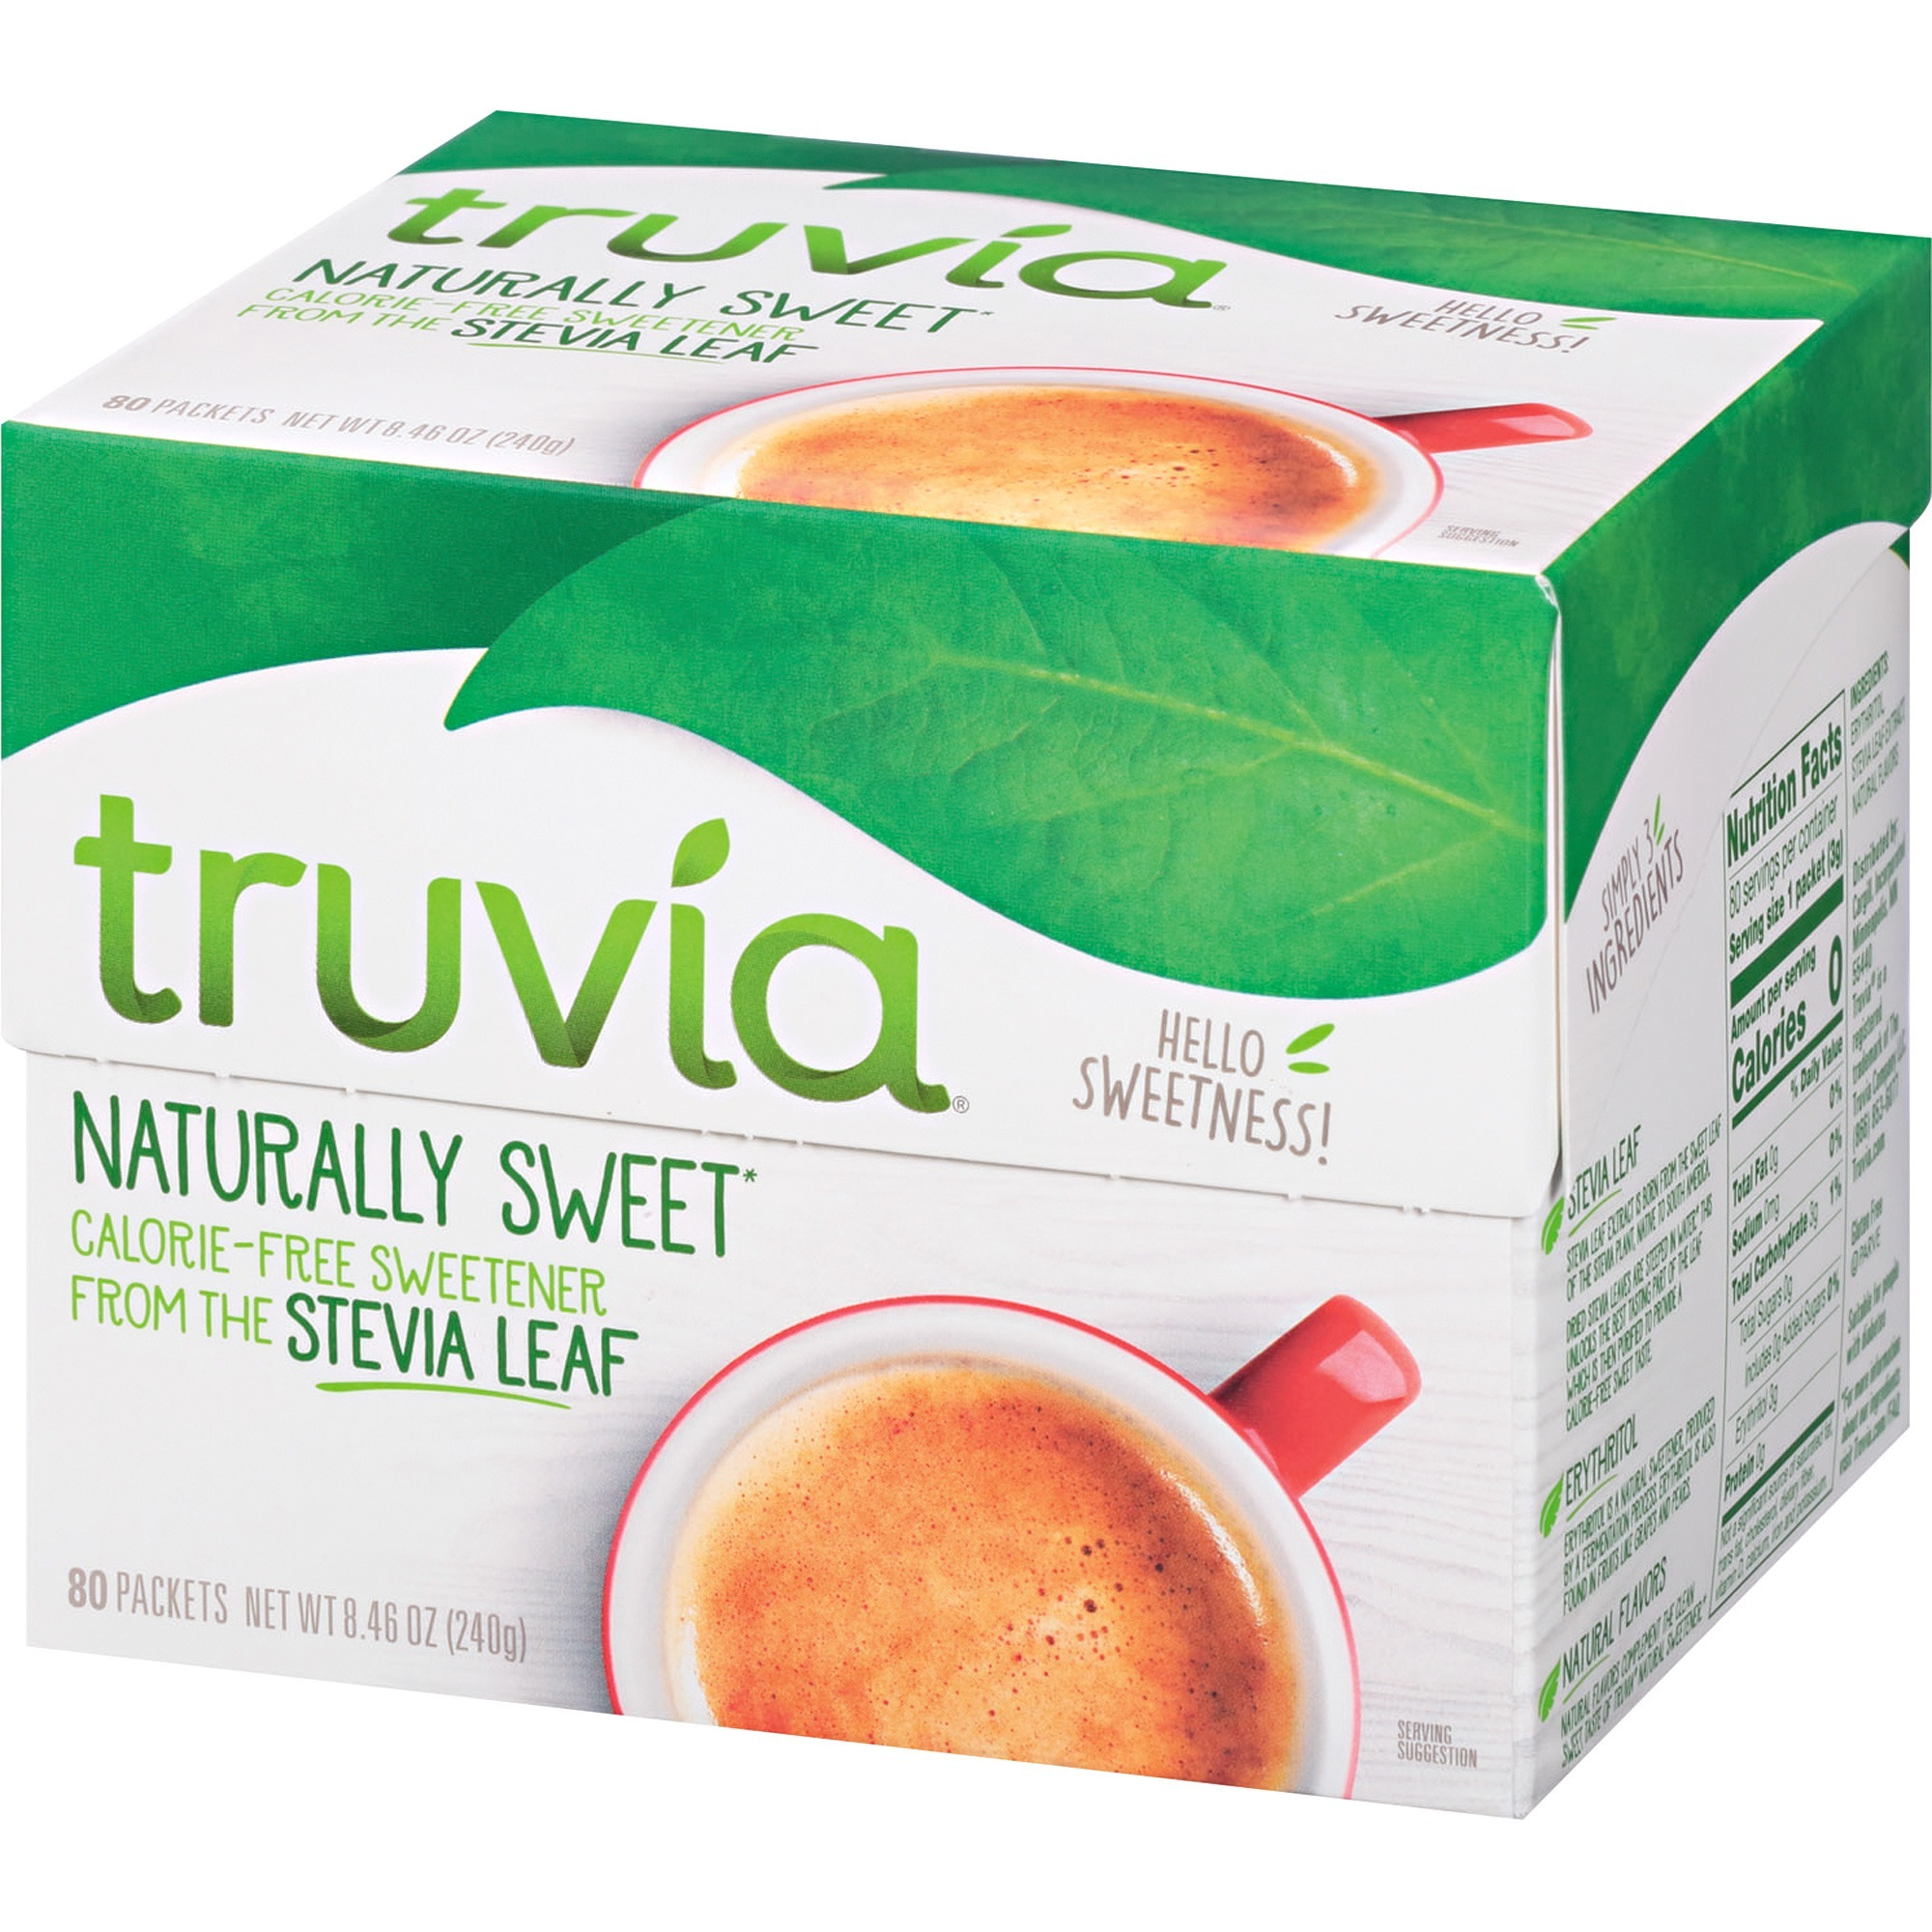 Truvia packet